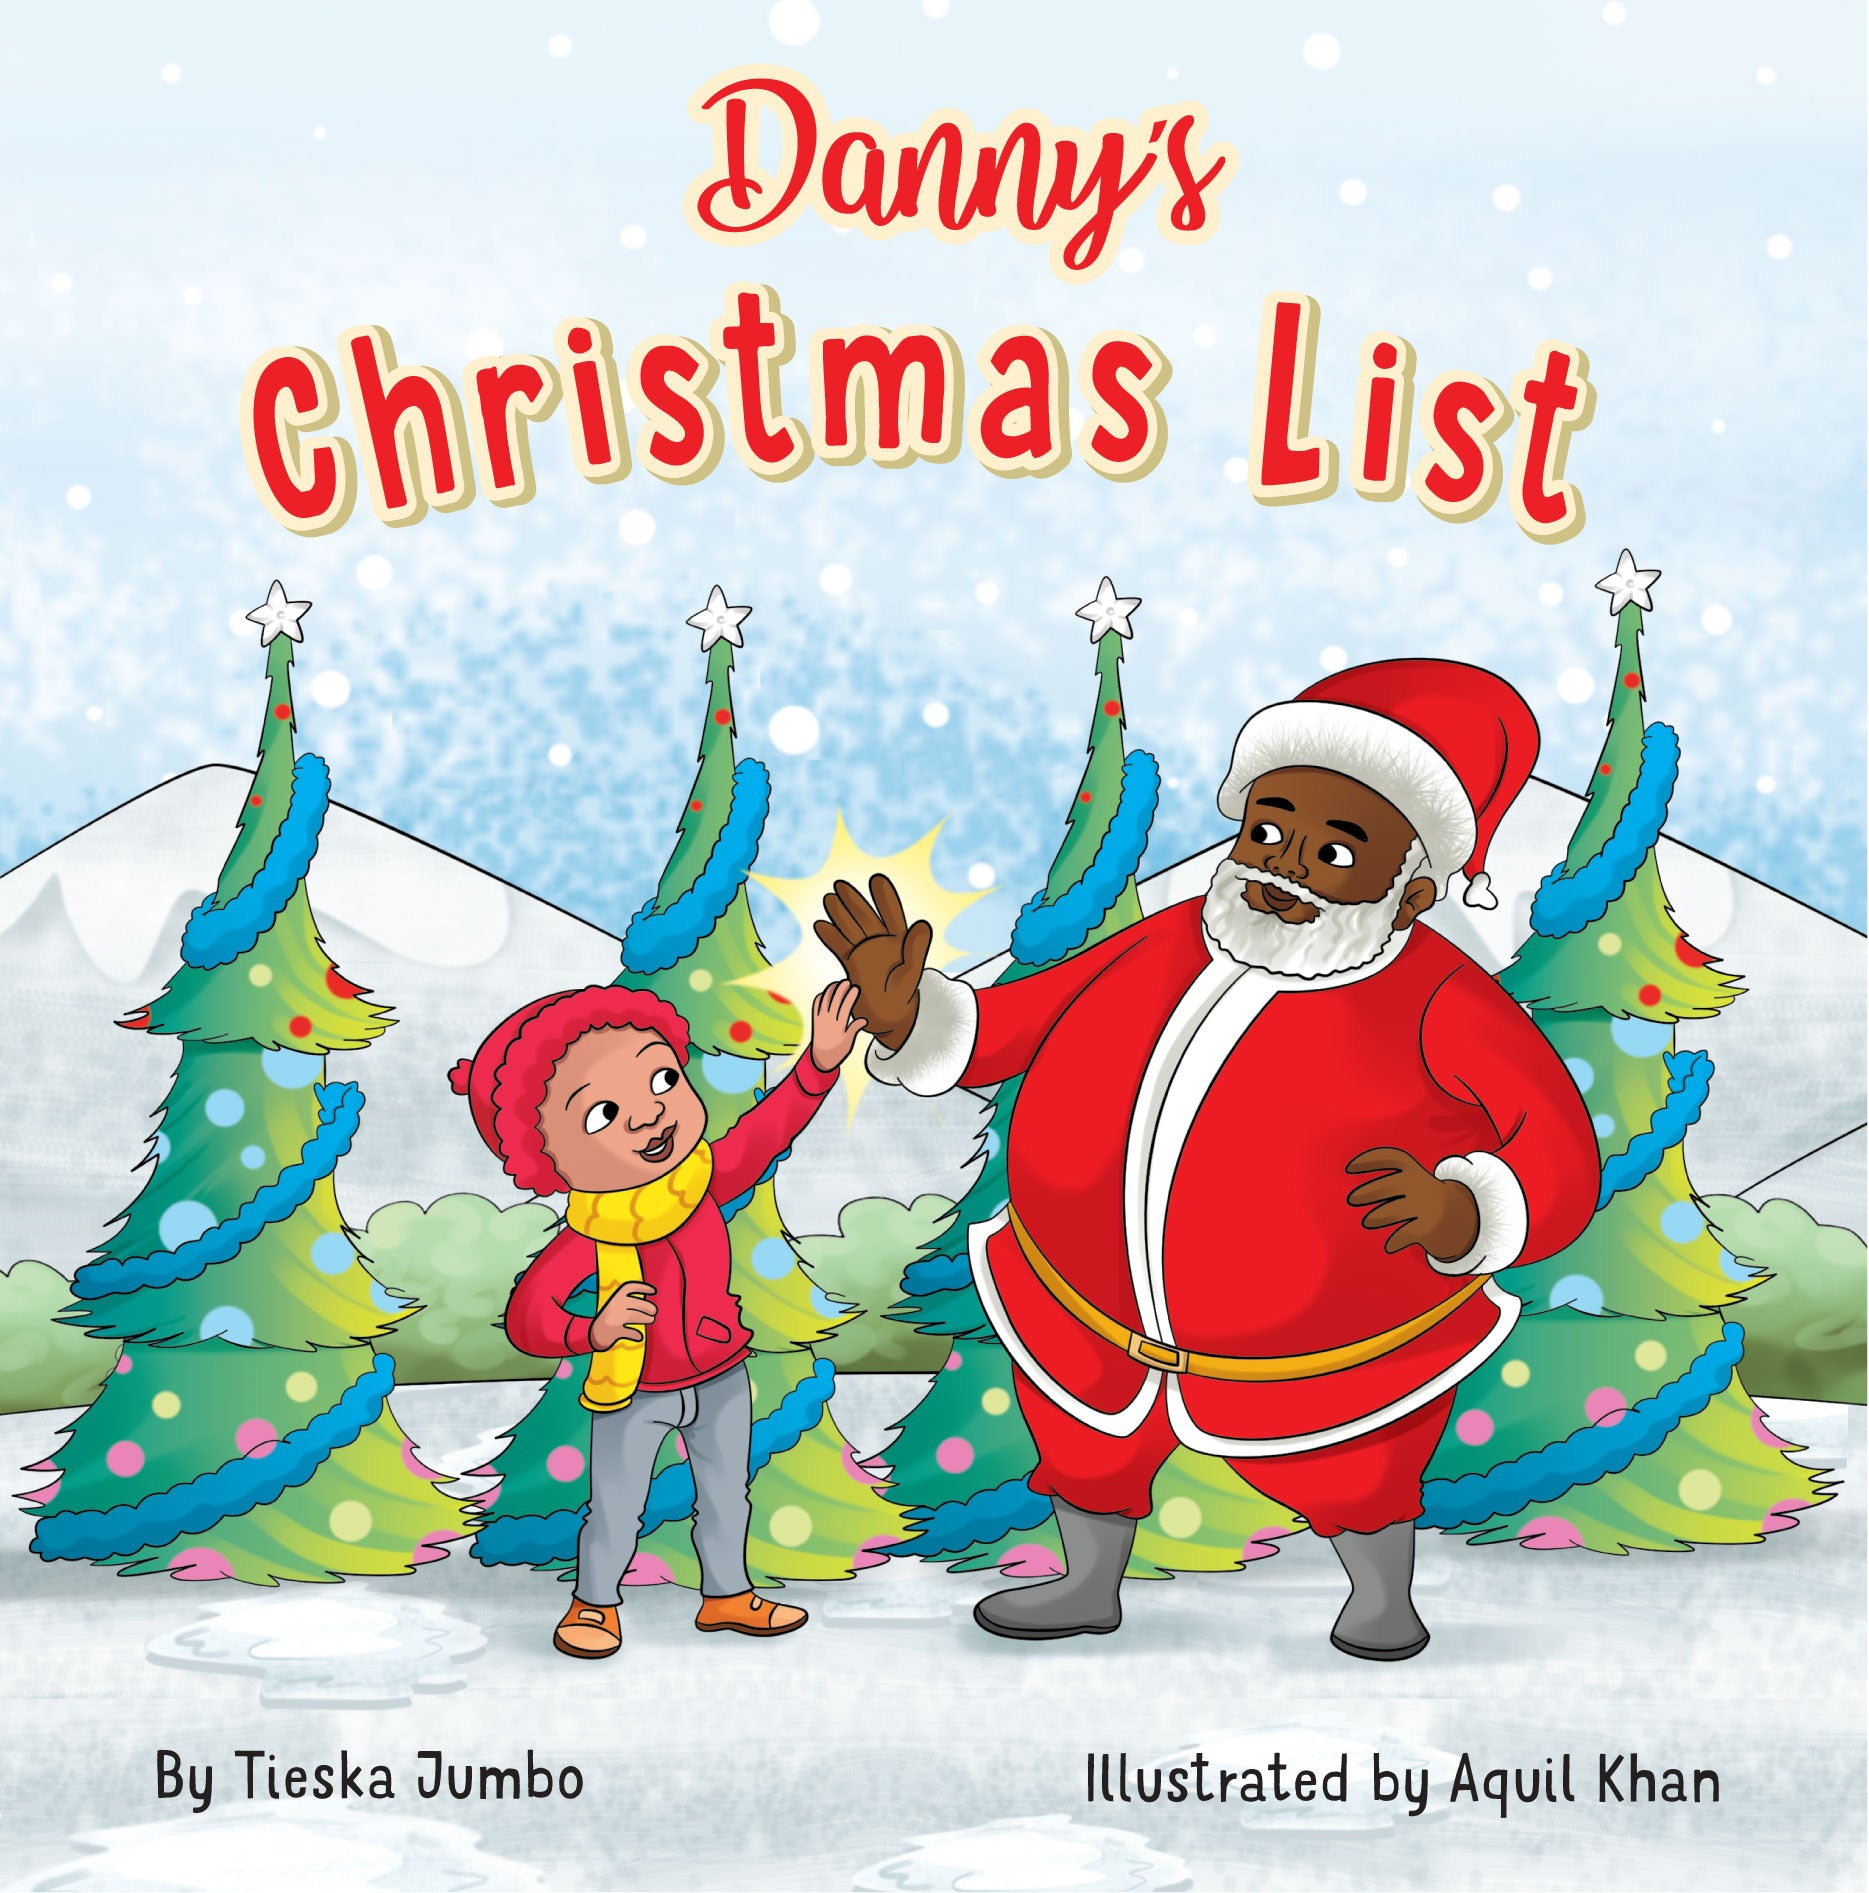 Danny's Christmas List Book and Ornament Bundle